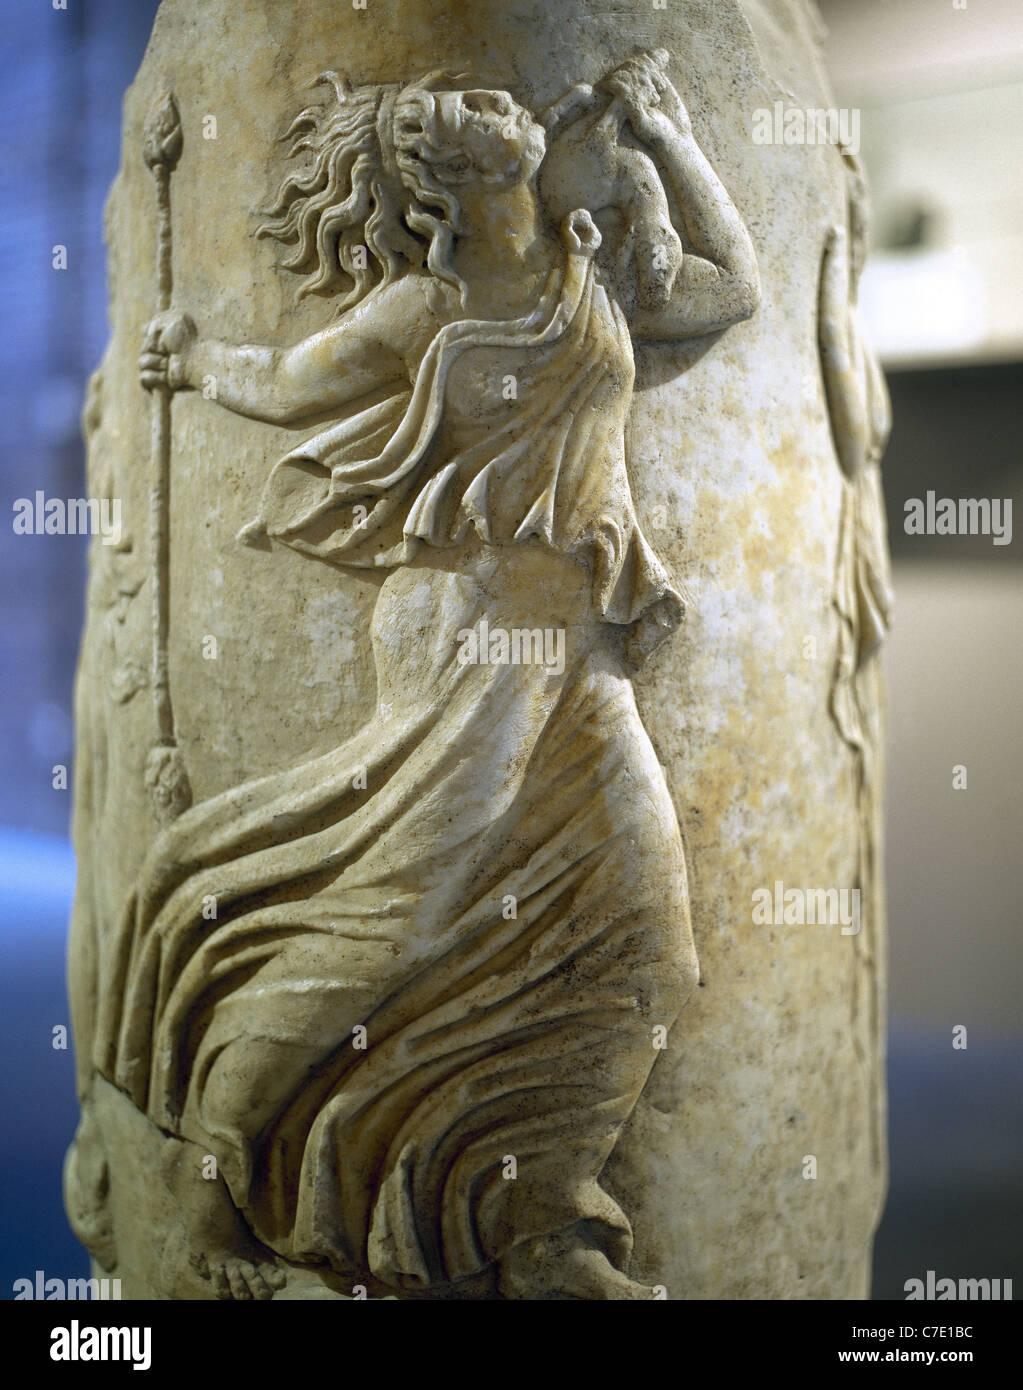 Dancing Maenad. Circular Altar. Pulpitum of the Italica Theater. 1st century. Archaeological Museum. Seville. Spain. Stock Photo